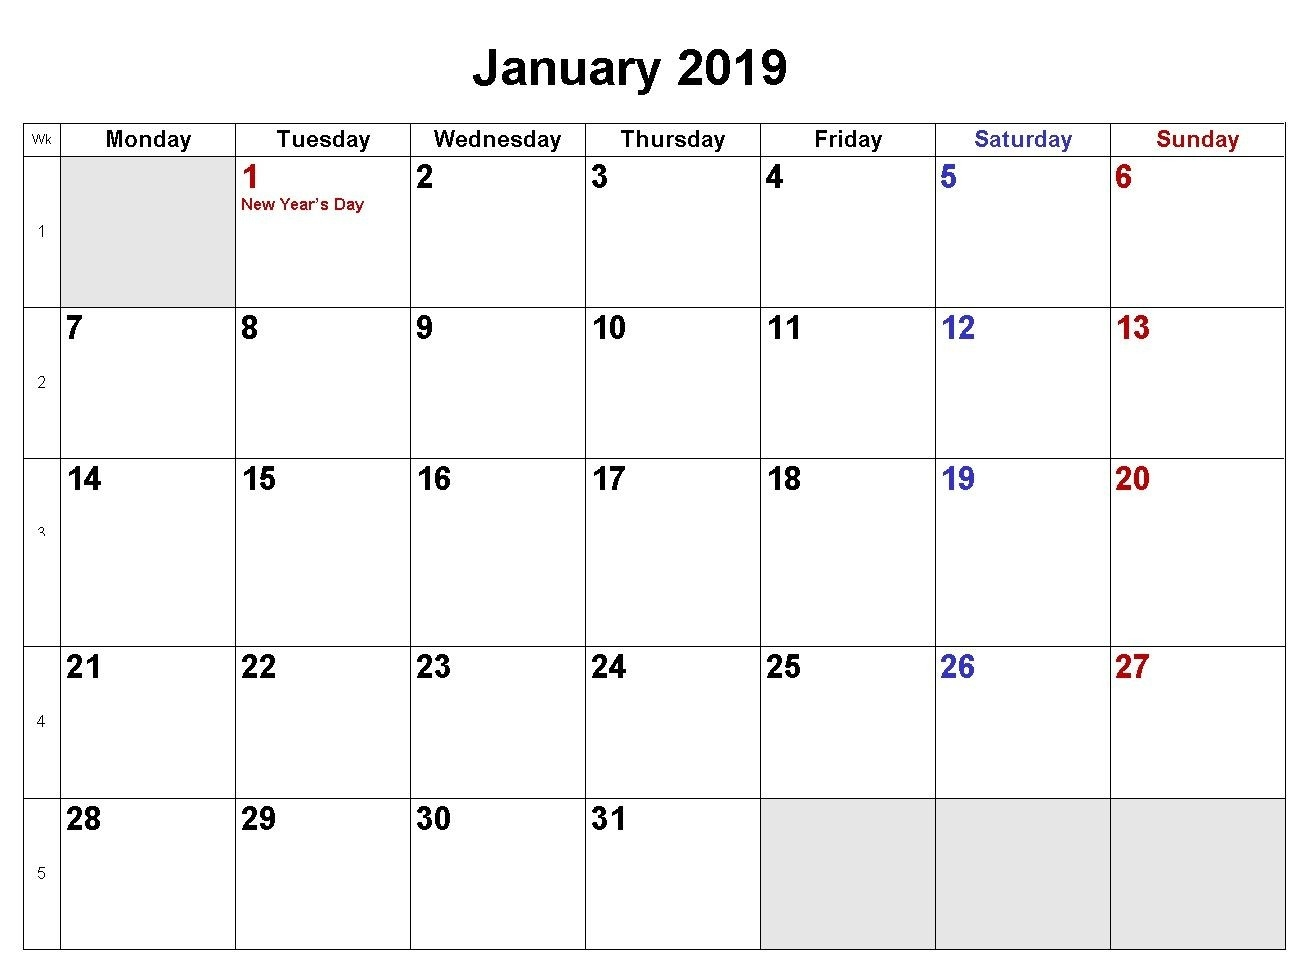 January 2019 Calendar Download In Word Excel Pdf Formats-Calendar Word 2020 Microsoft Word Monthly